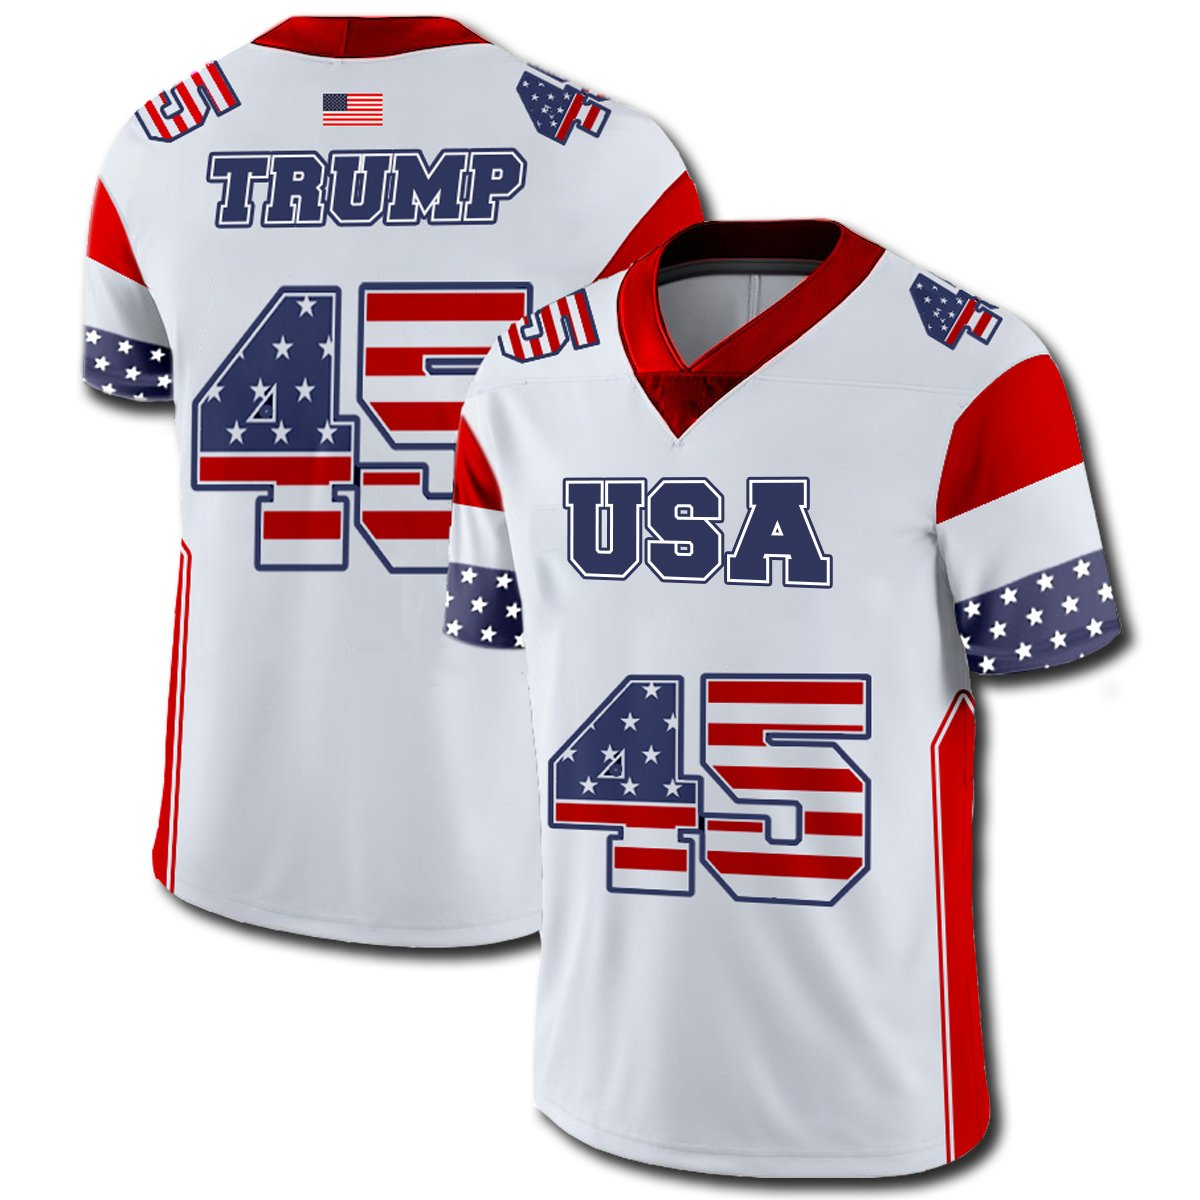 Trump #45 Football Jersey - Greater Half